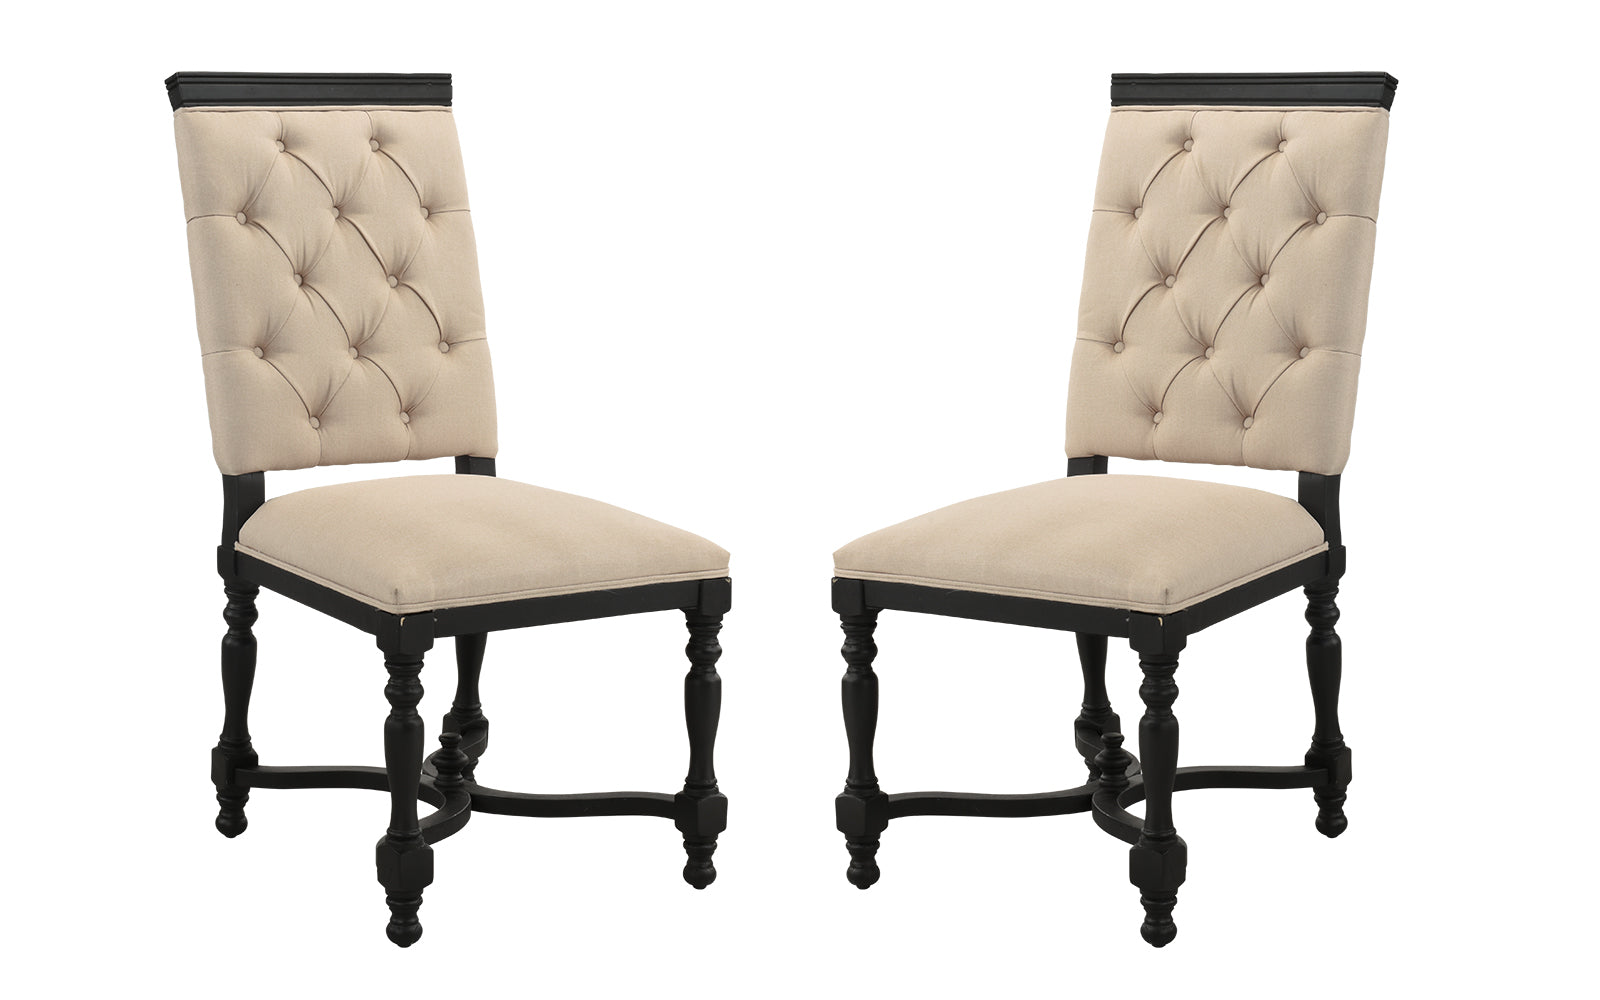 177 & Juste Set of (2) Victoria Style Tufted Dining Chairs with Carved Legs